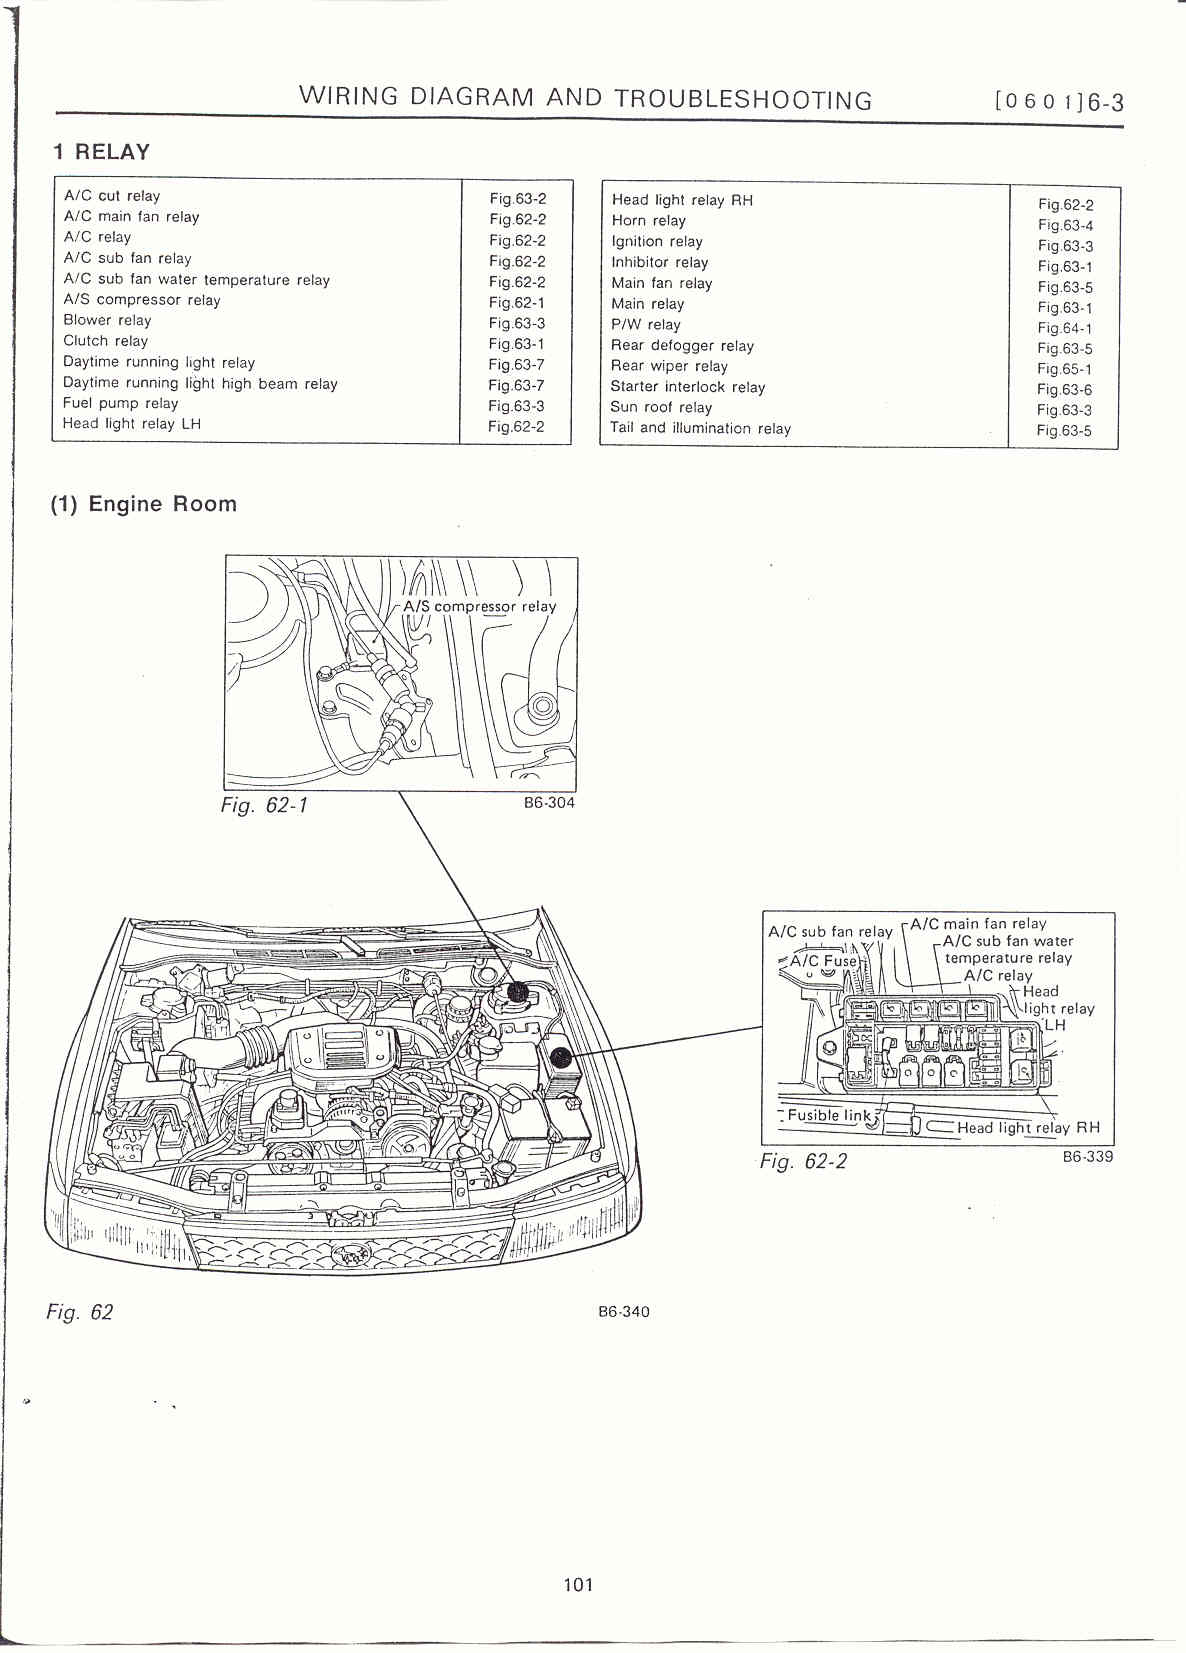 surrealmirage subaru legacy swap electrical info notes rh surrealmirage com  Subaru SVX Engine Diagram 1999 Subaru Outback Engine Diagram